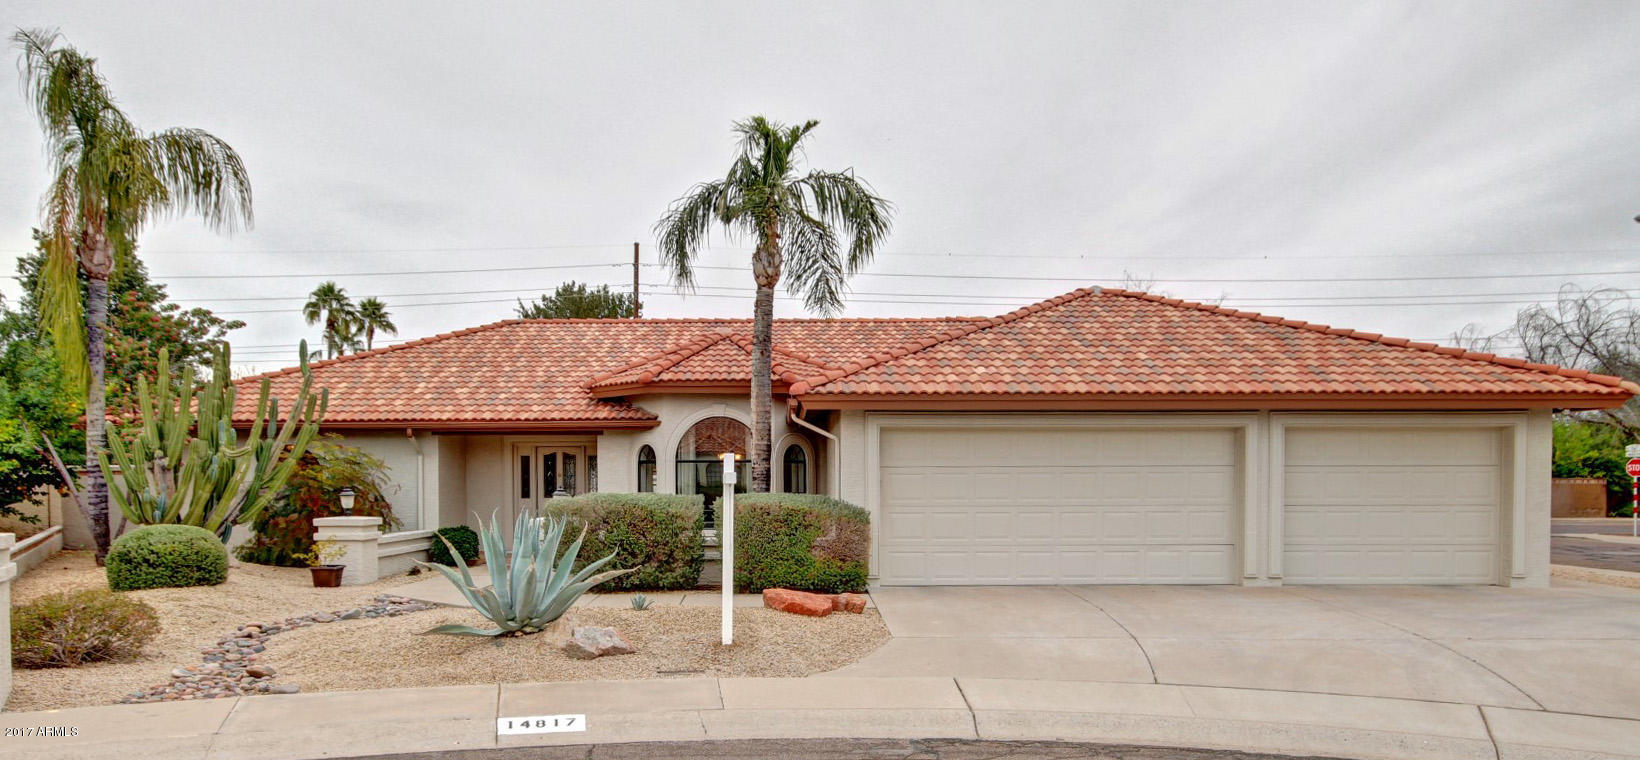 Recently Sold 14817 N 55th Place Scottsdale 85254